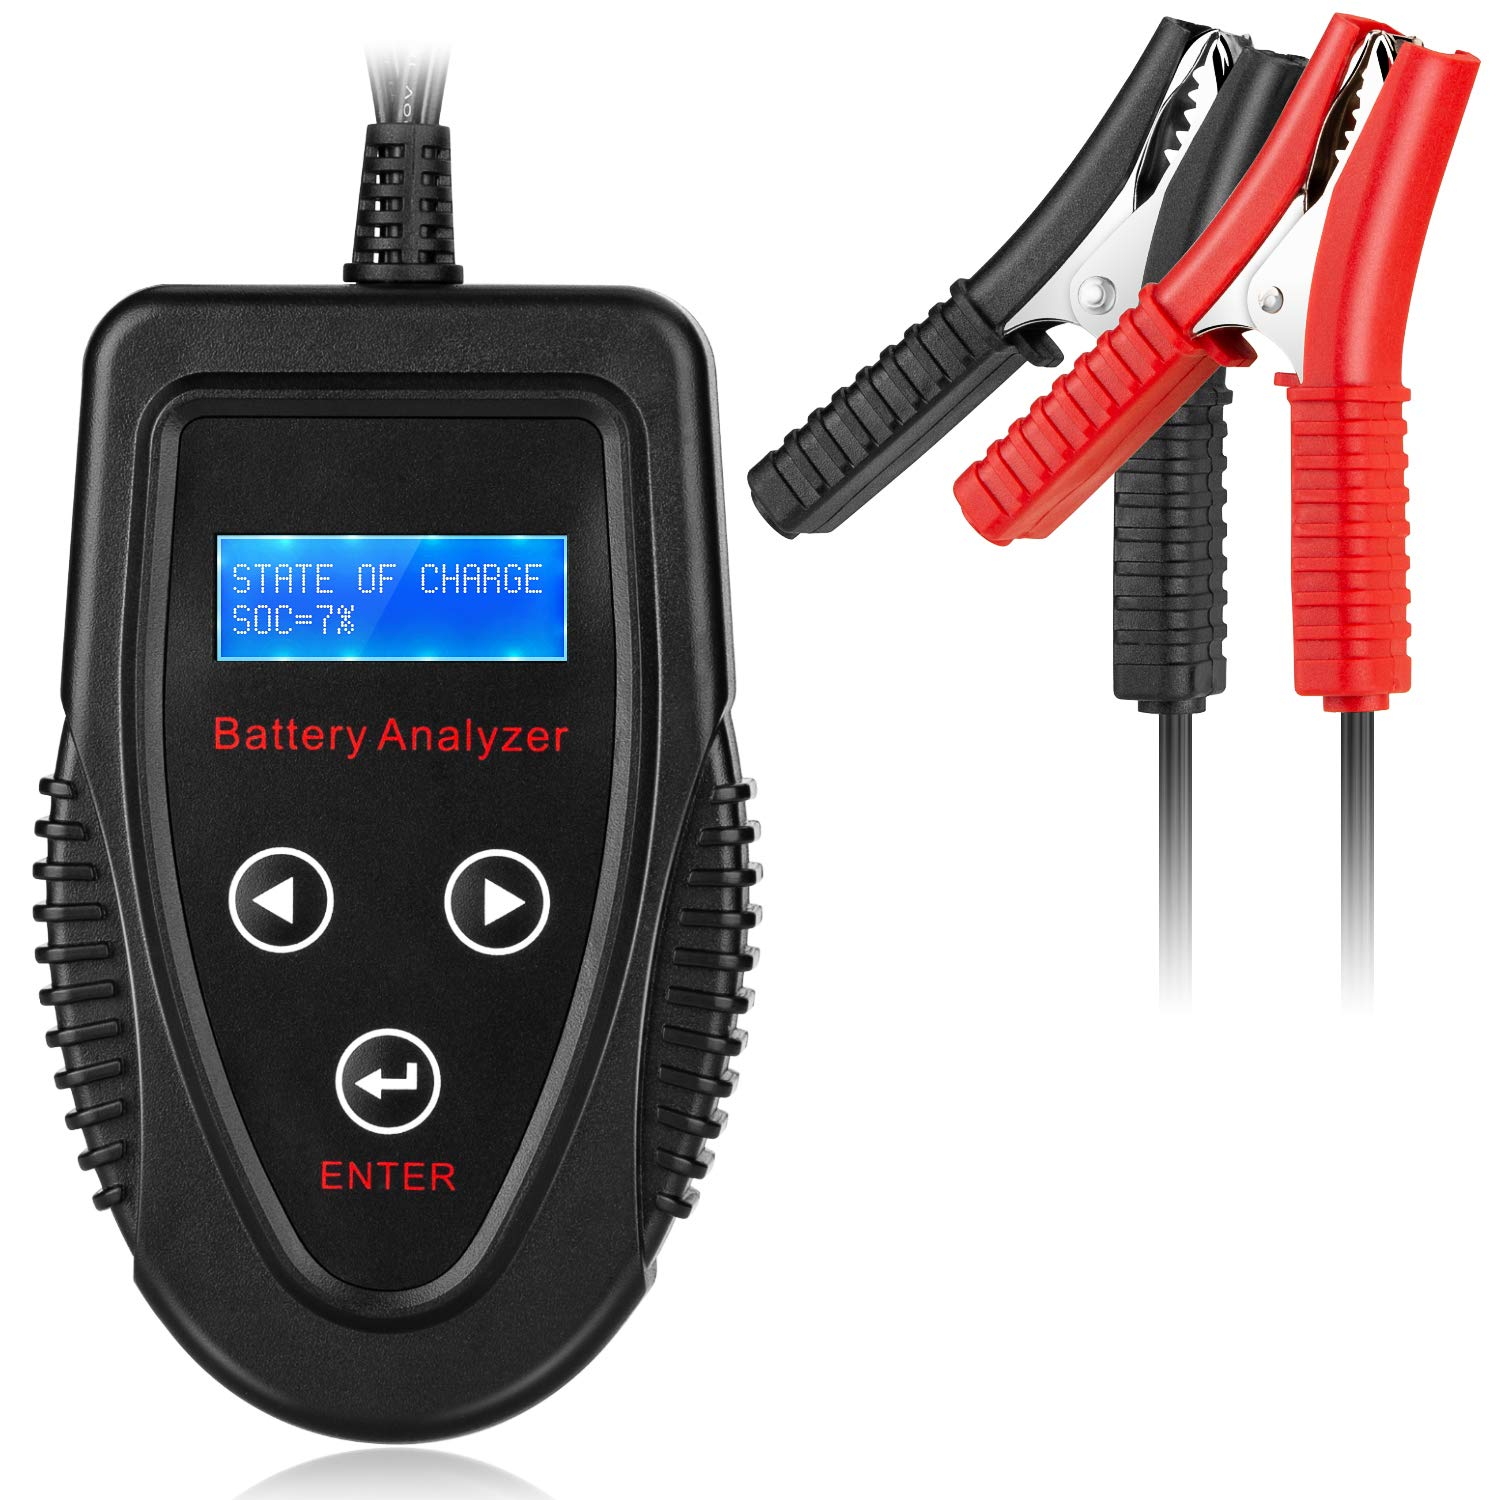 MEEARO Professional 12V 20-1200 CCA 220AH Automotive Load Battery Tester Digital Analyzer Bad Cell Test Tool for Car/Boat/Motorcycle and More by MEEARO (Image #1)